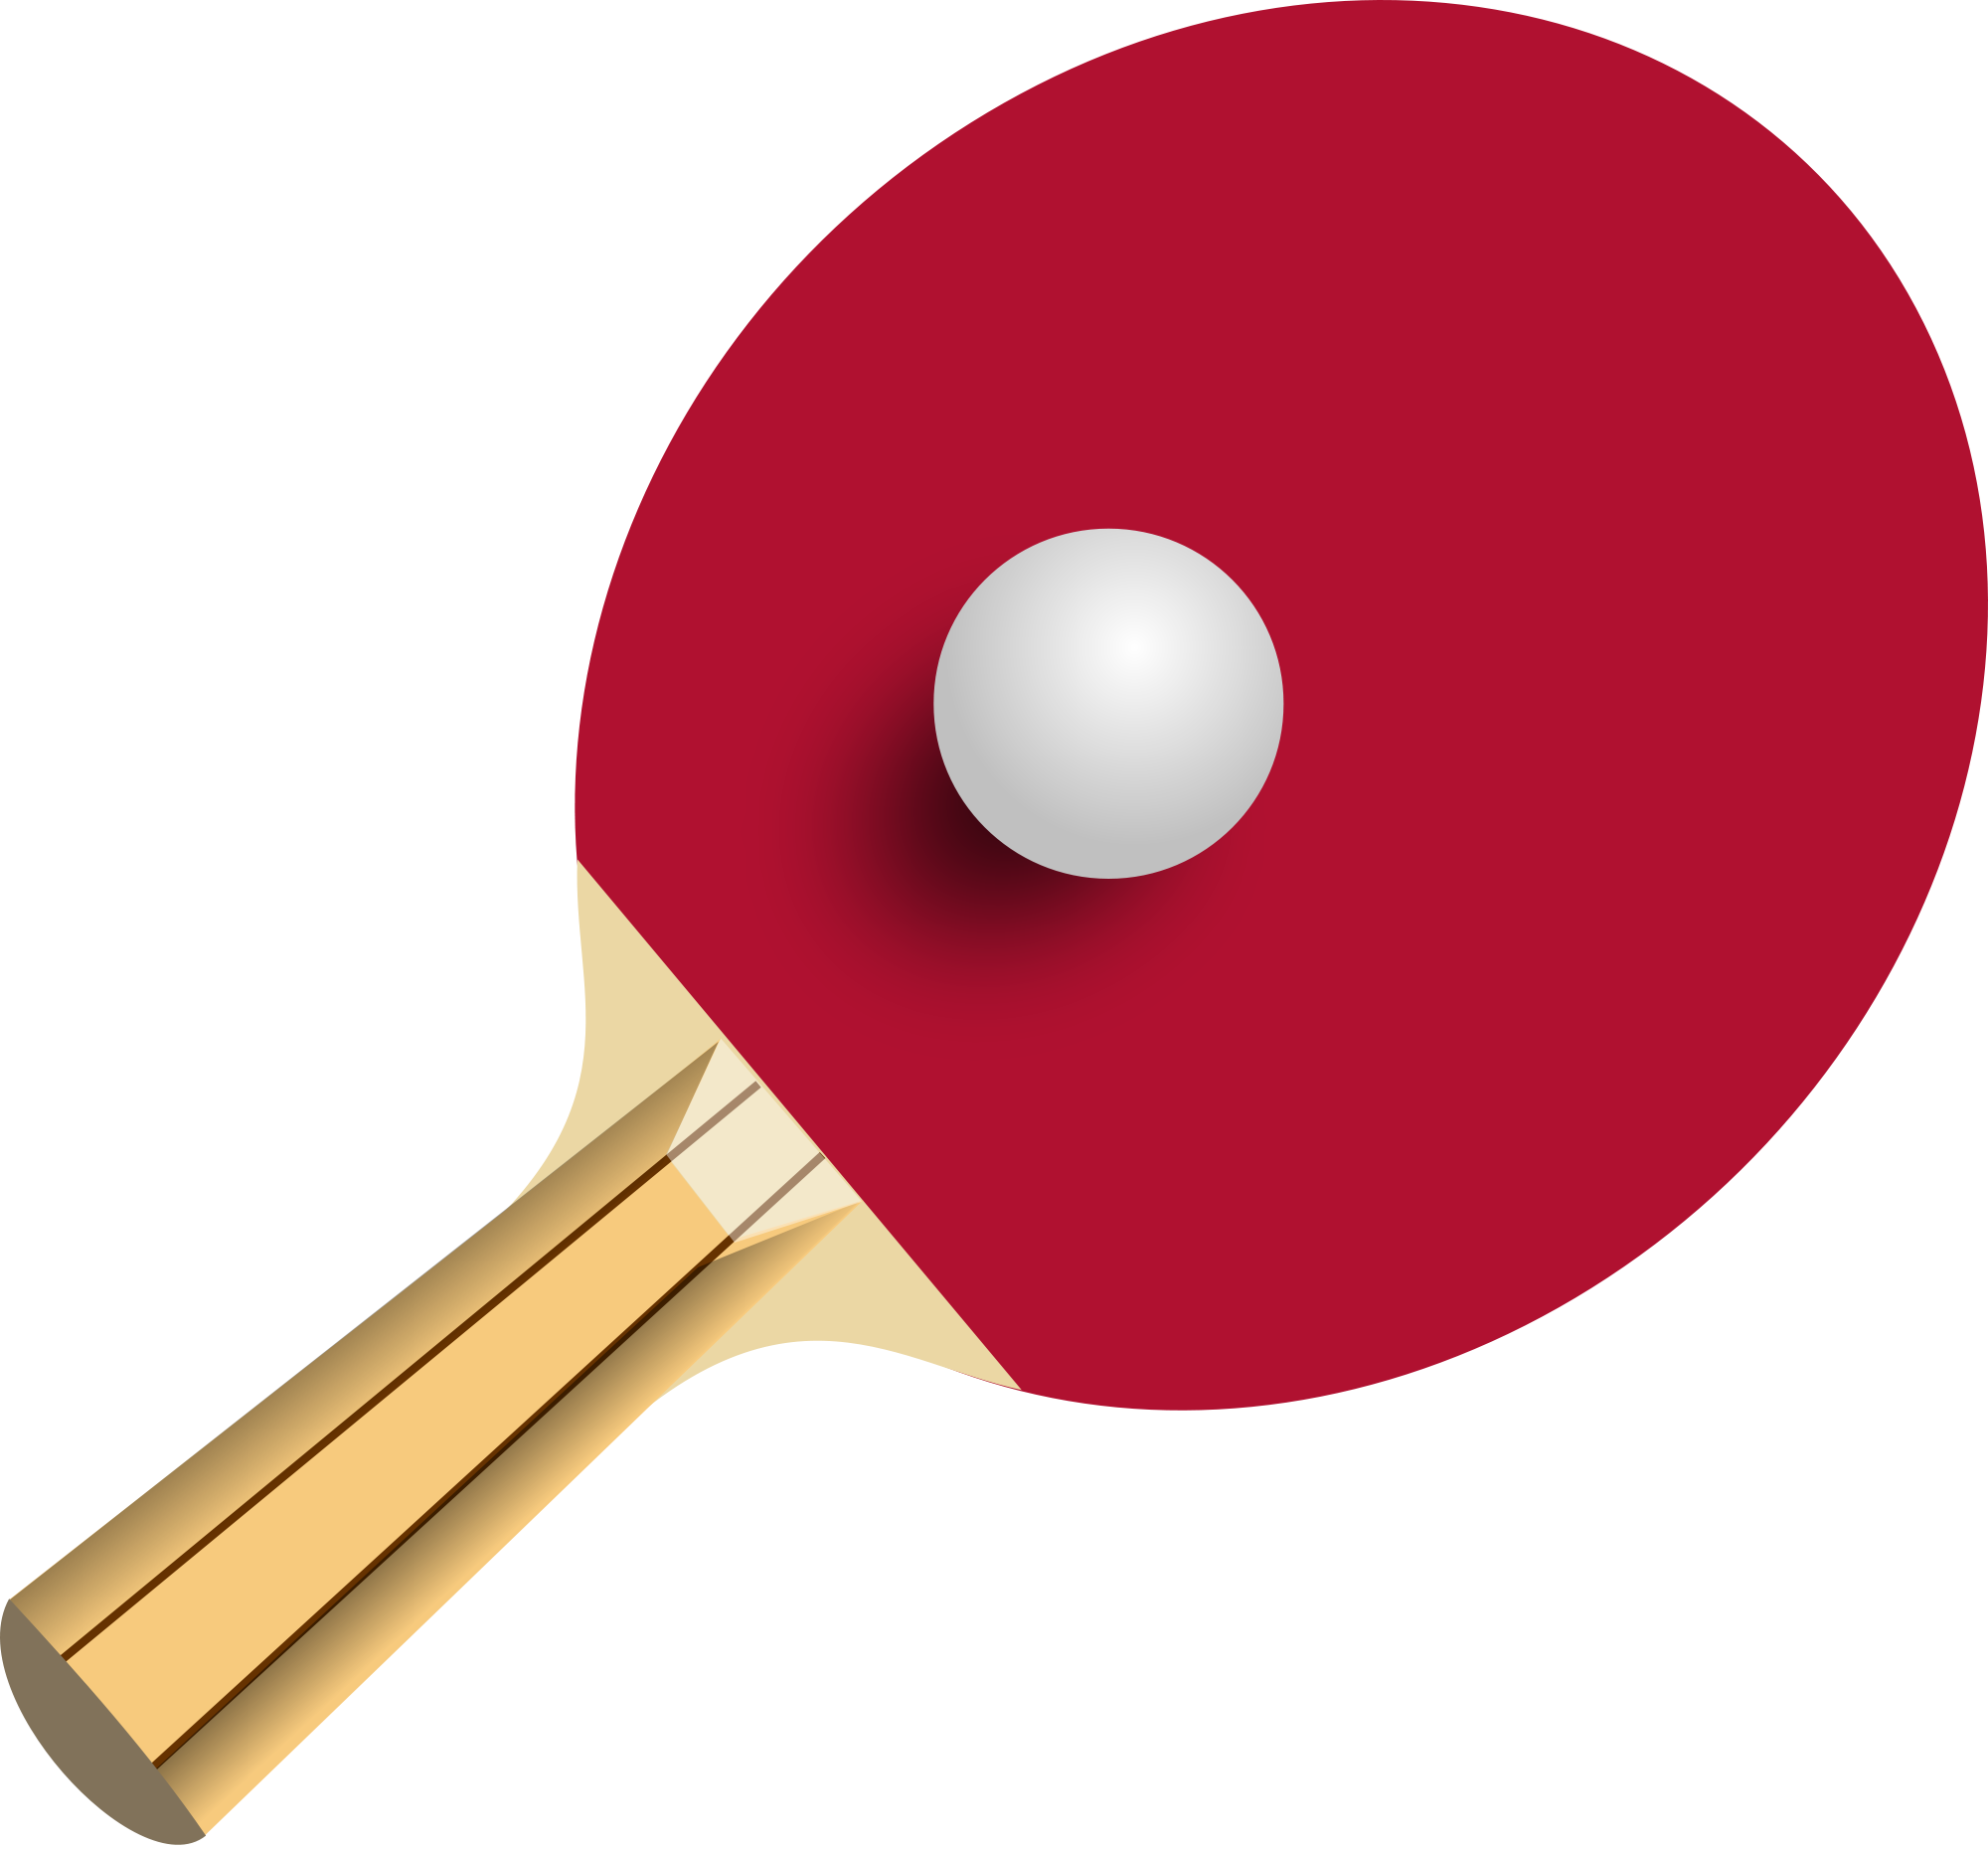 Ping Pong PNG images free download, ping pong ball PNG.